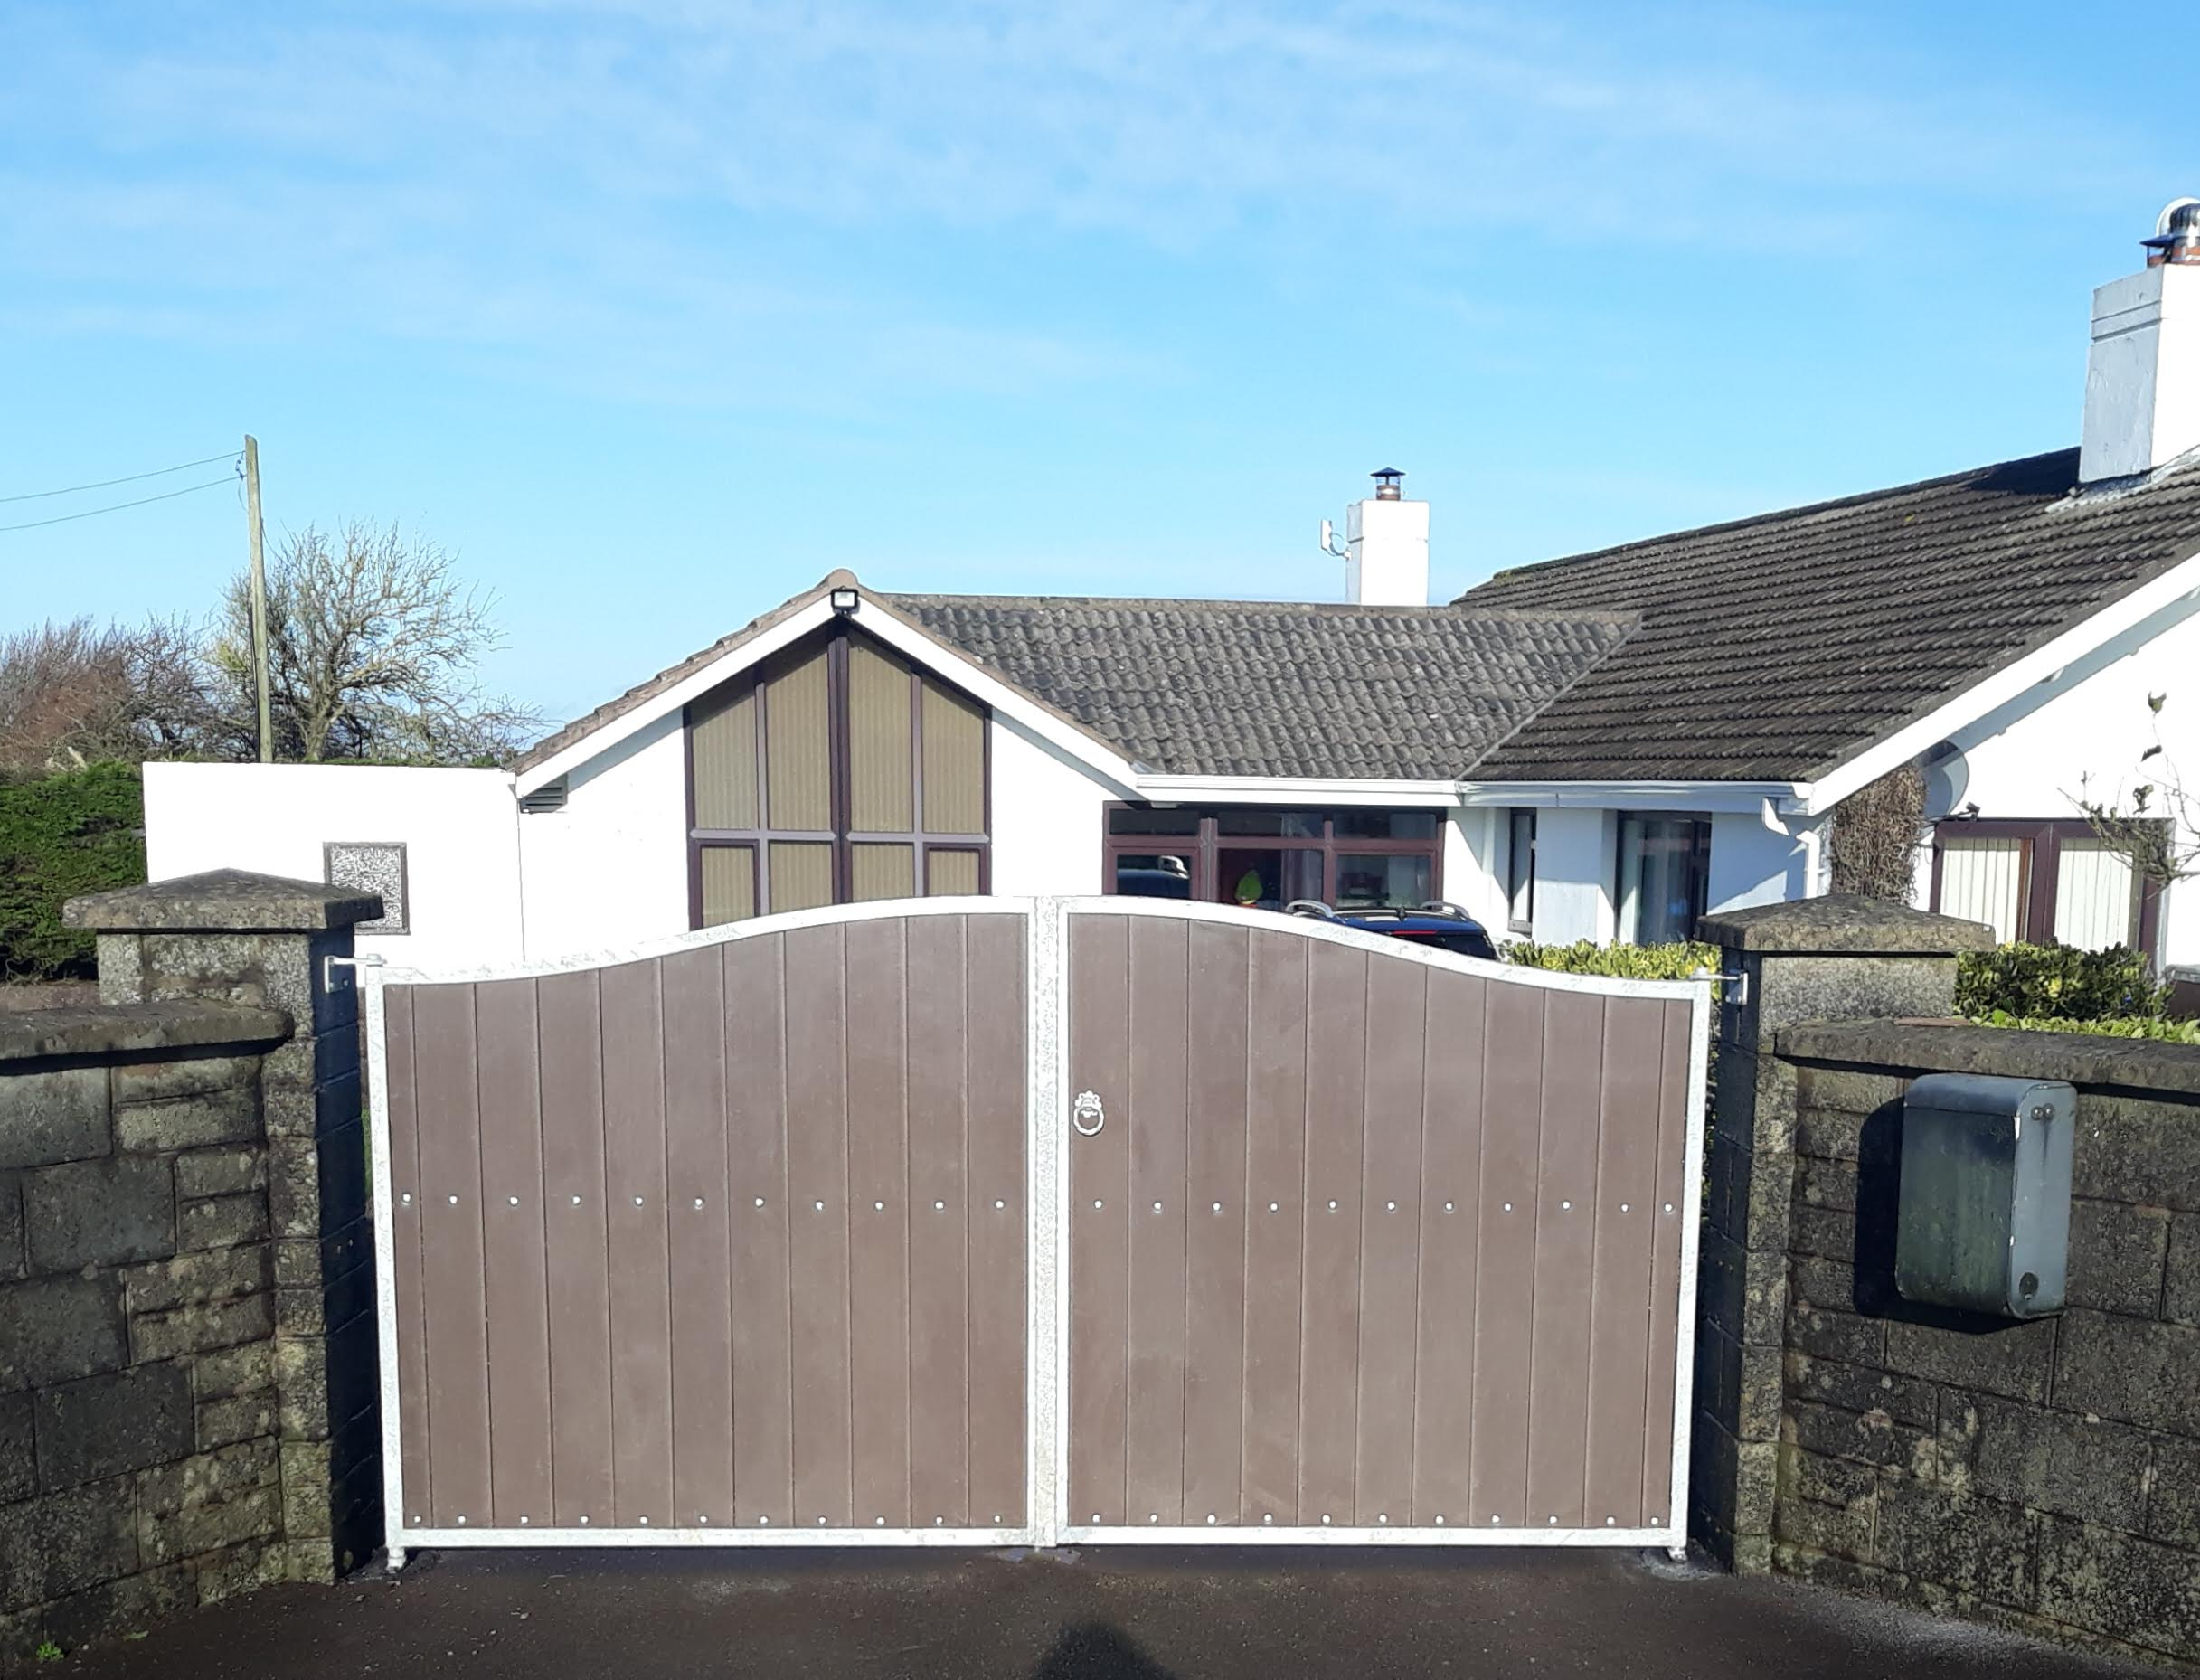 composite board gates, composite board entrance gates, pvc gates, pvc entrance gates, pvc board gates, pvc board entrance gates, maintenance free gates,